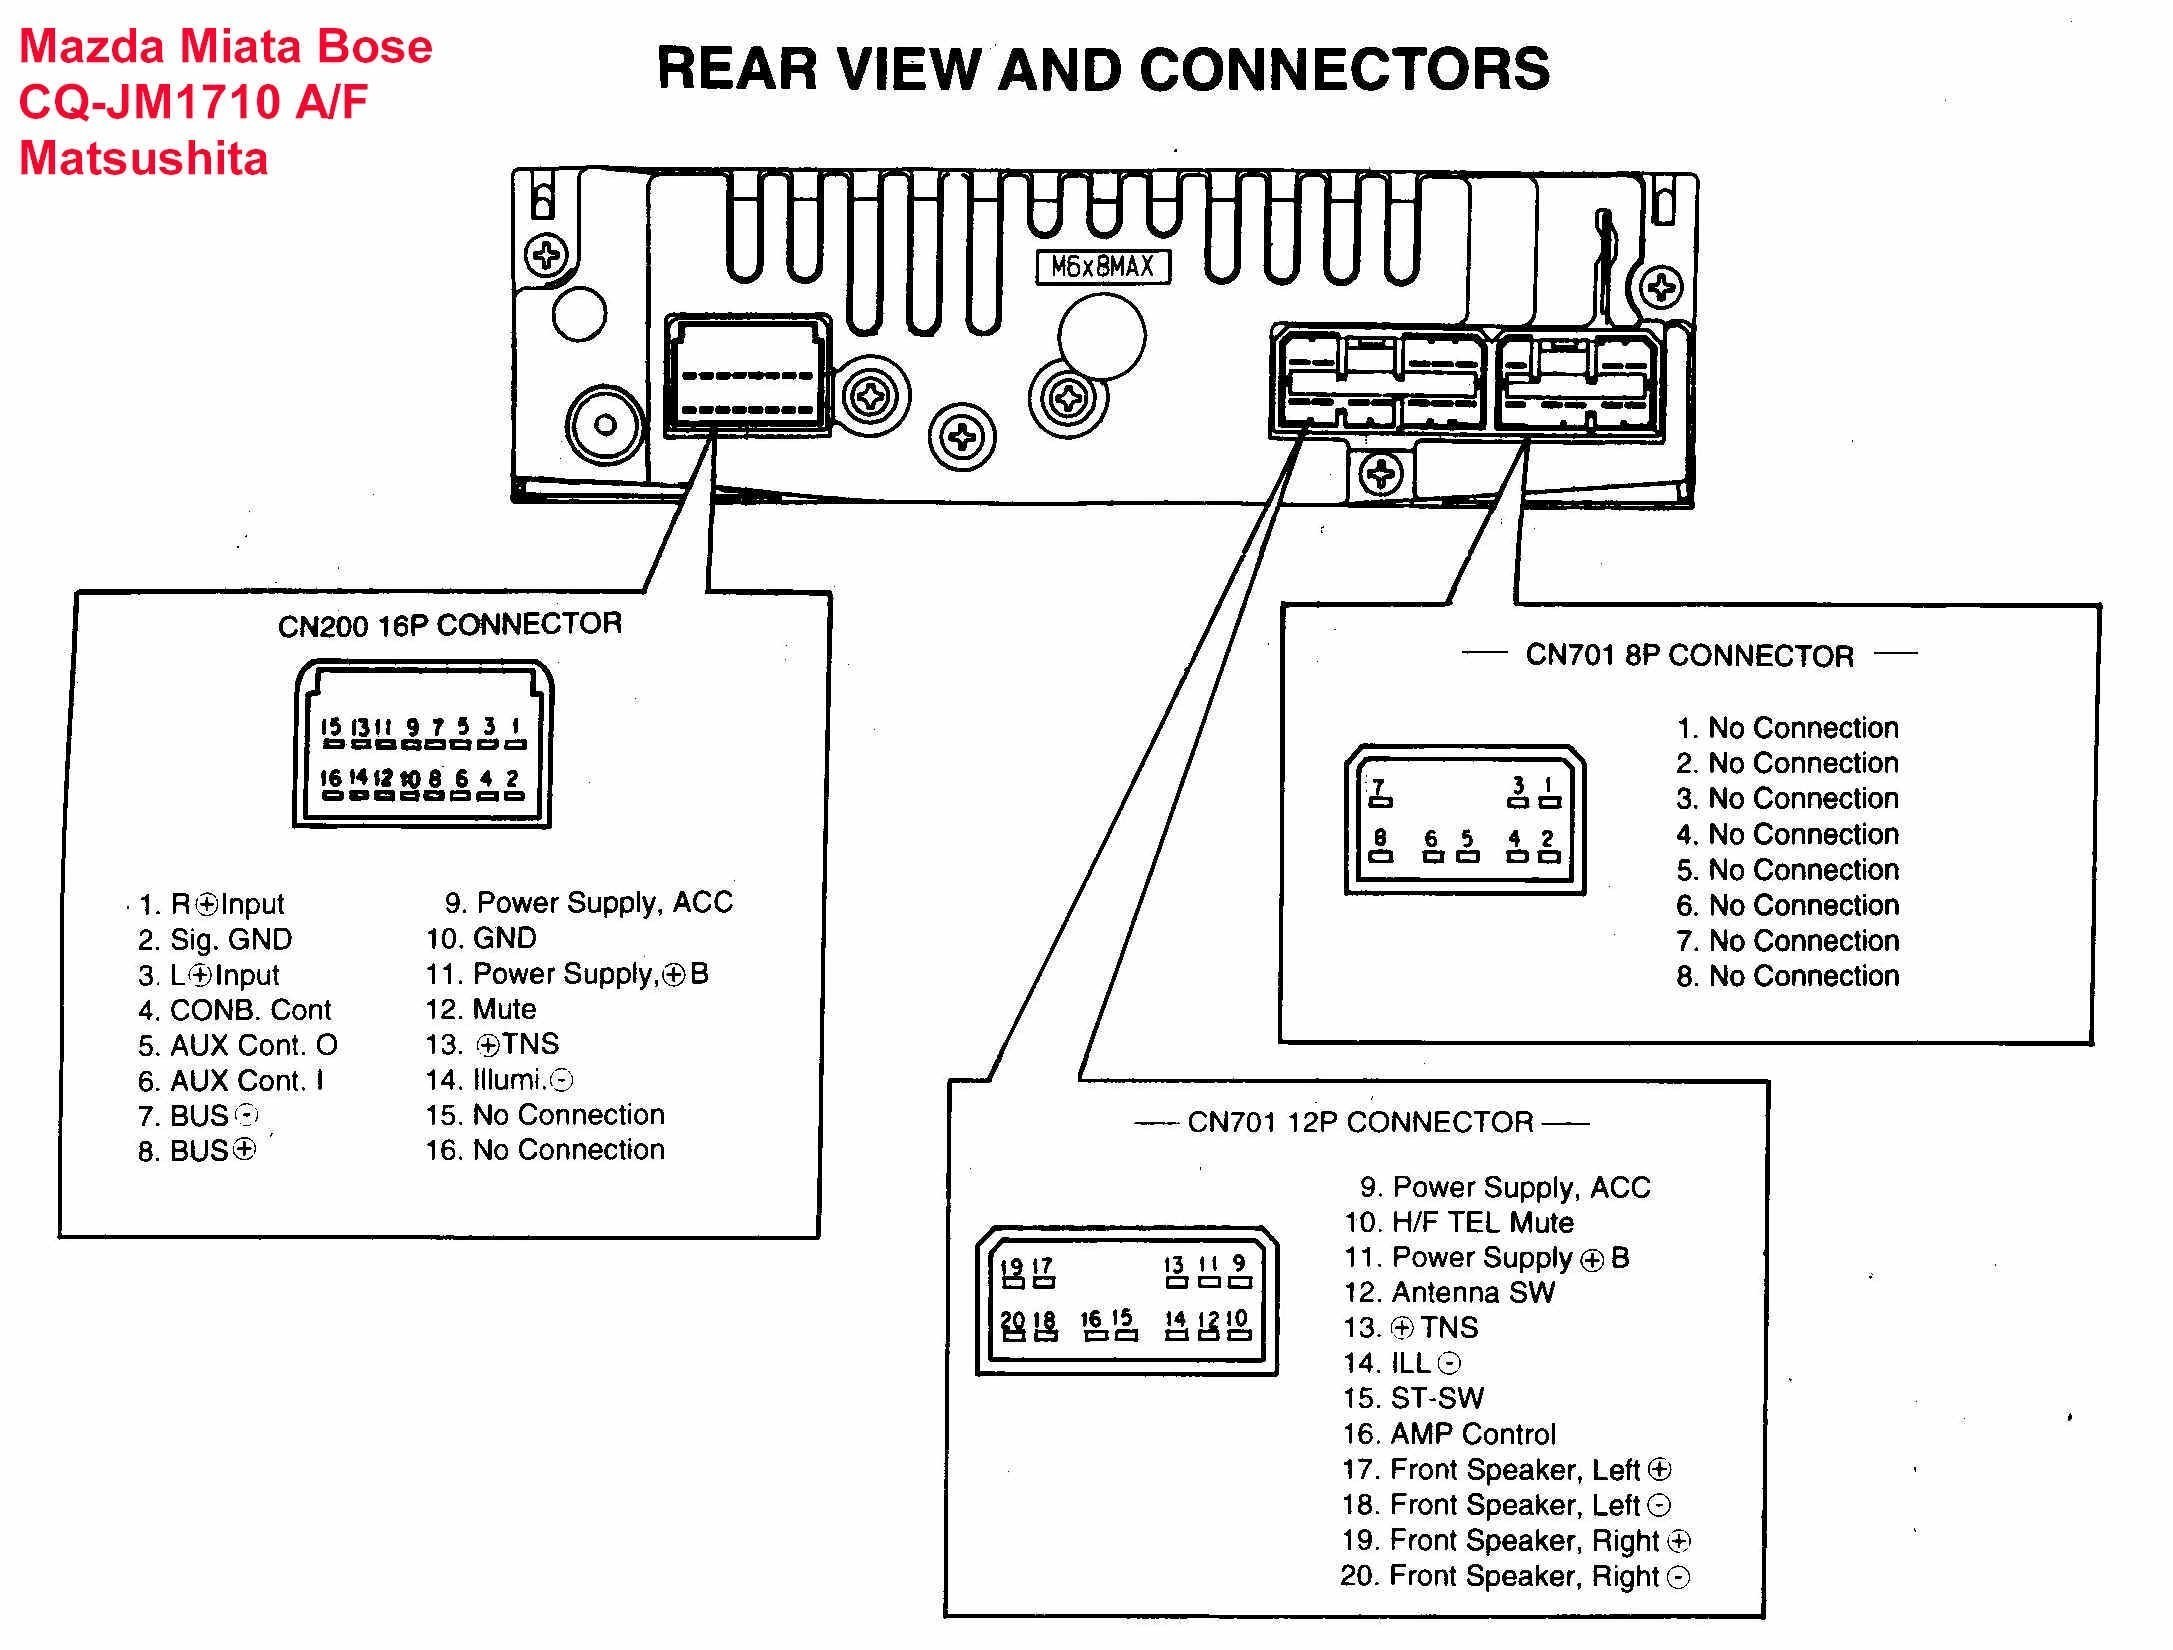 1999 Mazda Miata Engine Diagram Mazda Mx 3 Radio Wiring Diagram Free Image Wiring Diagram Engine Of 1999 Mazda Miata Engine Diagram